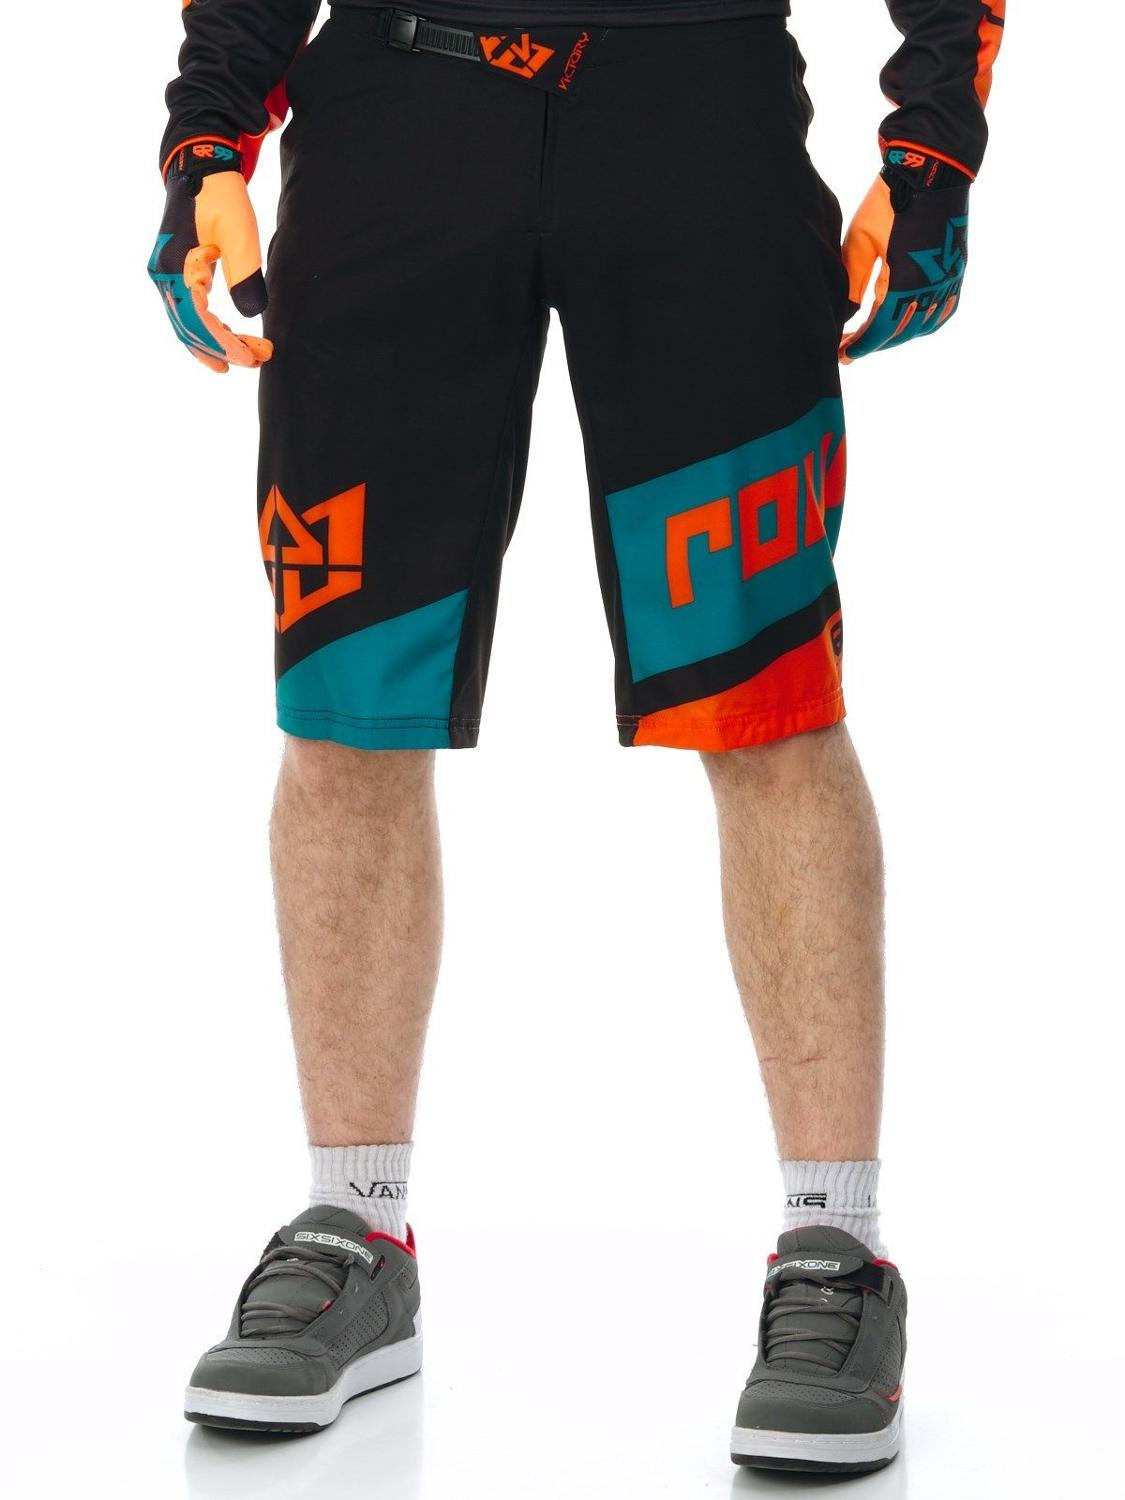 2019 Royal Racing RR99 Victory MTB Shorts ATV MX BMX DH Motocross Racing Mountain Biker Shorts Motorcycle Mx Pants Mtb Shorts